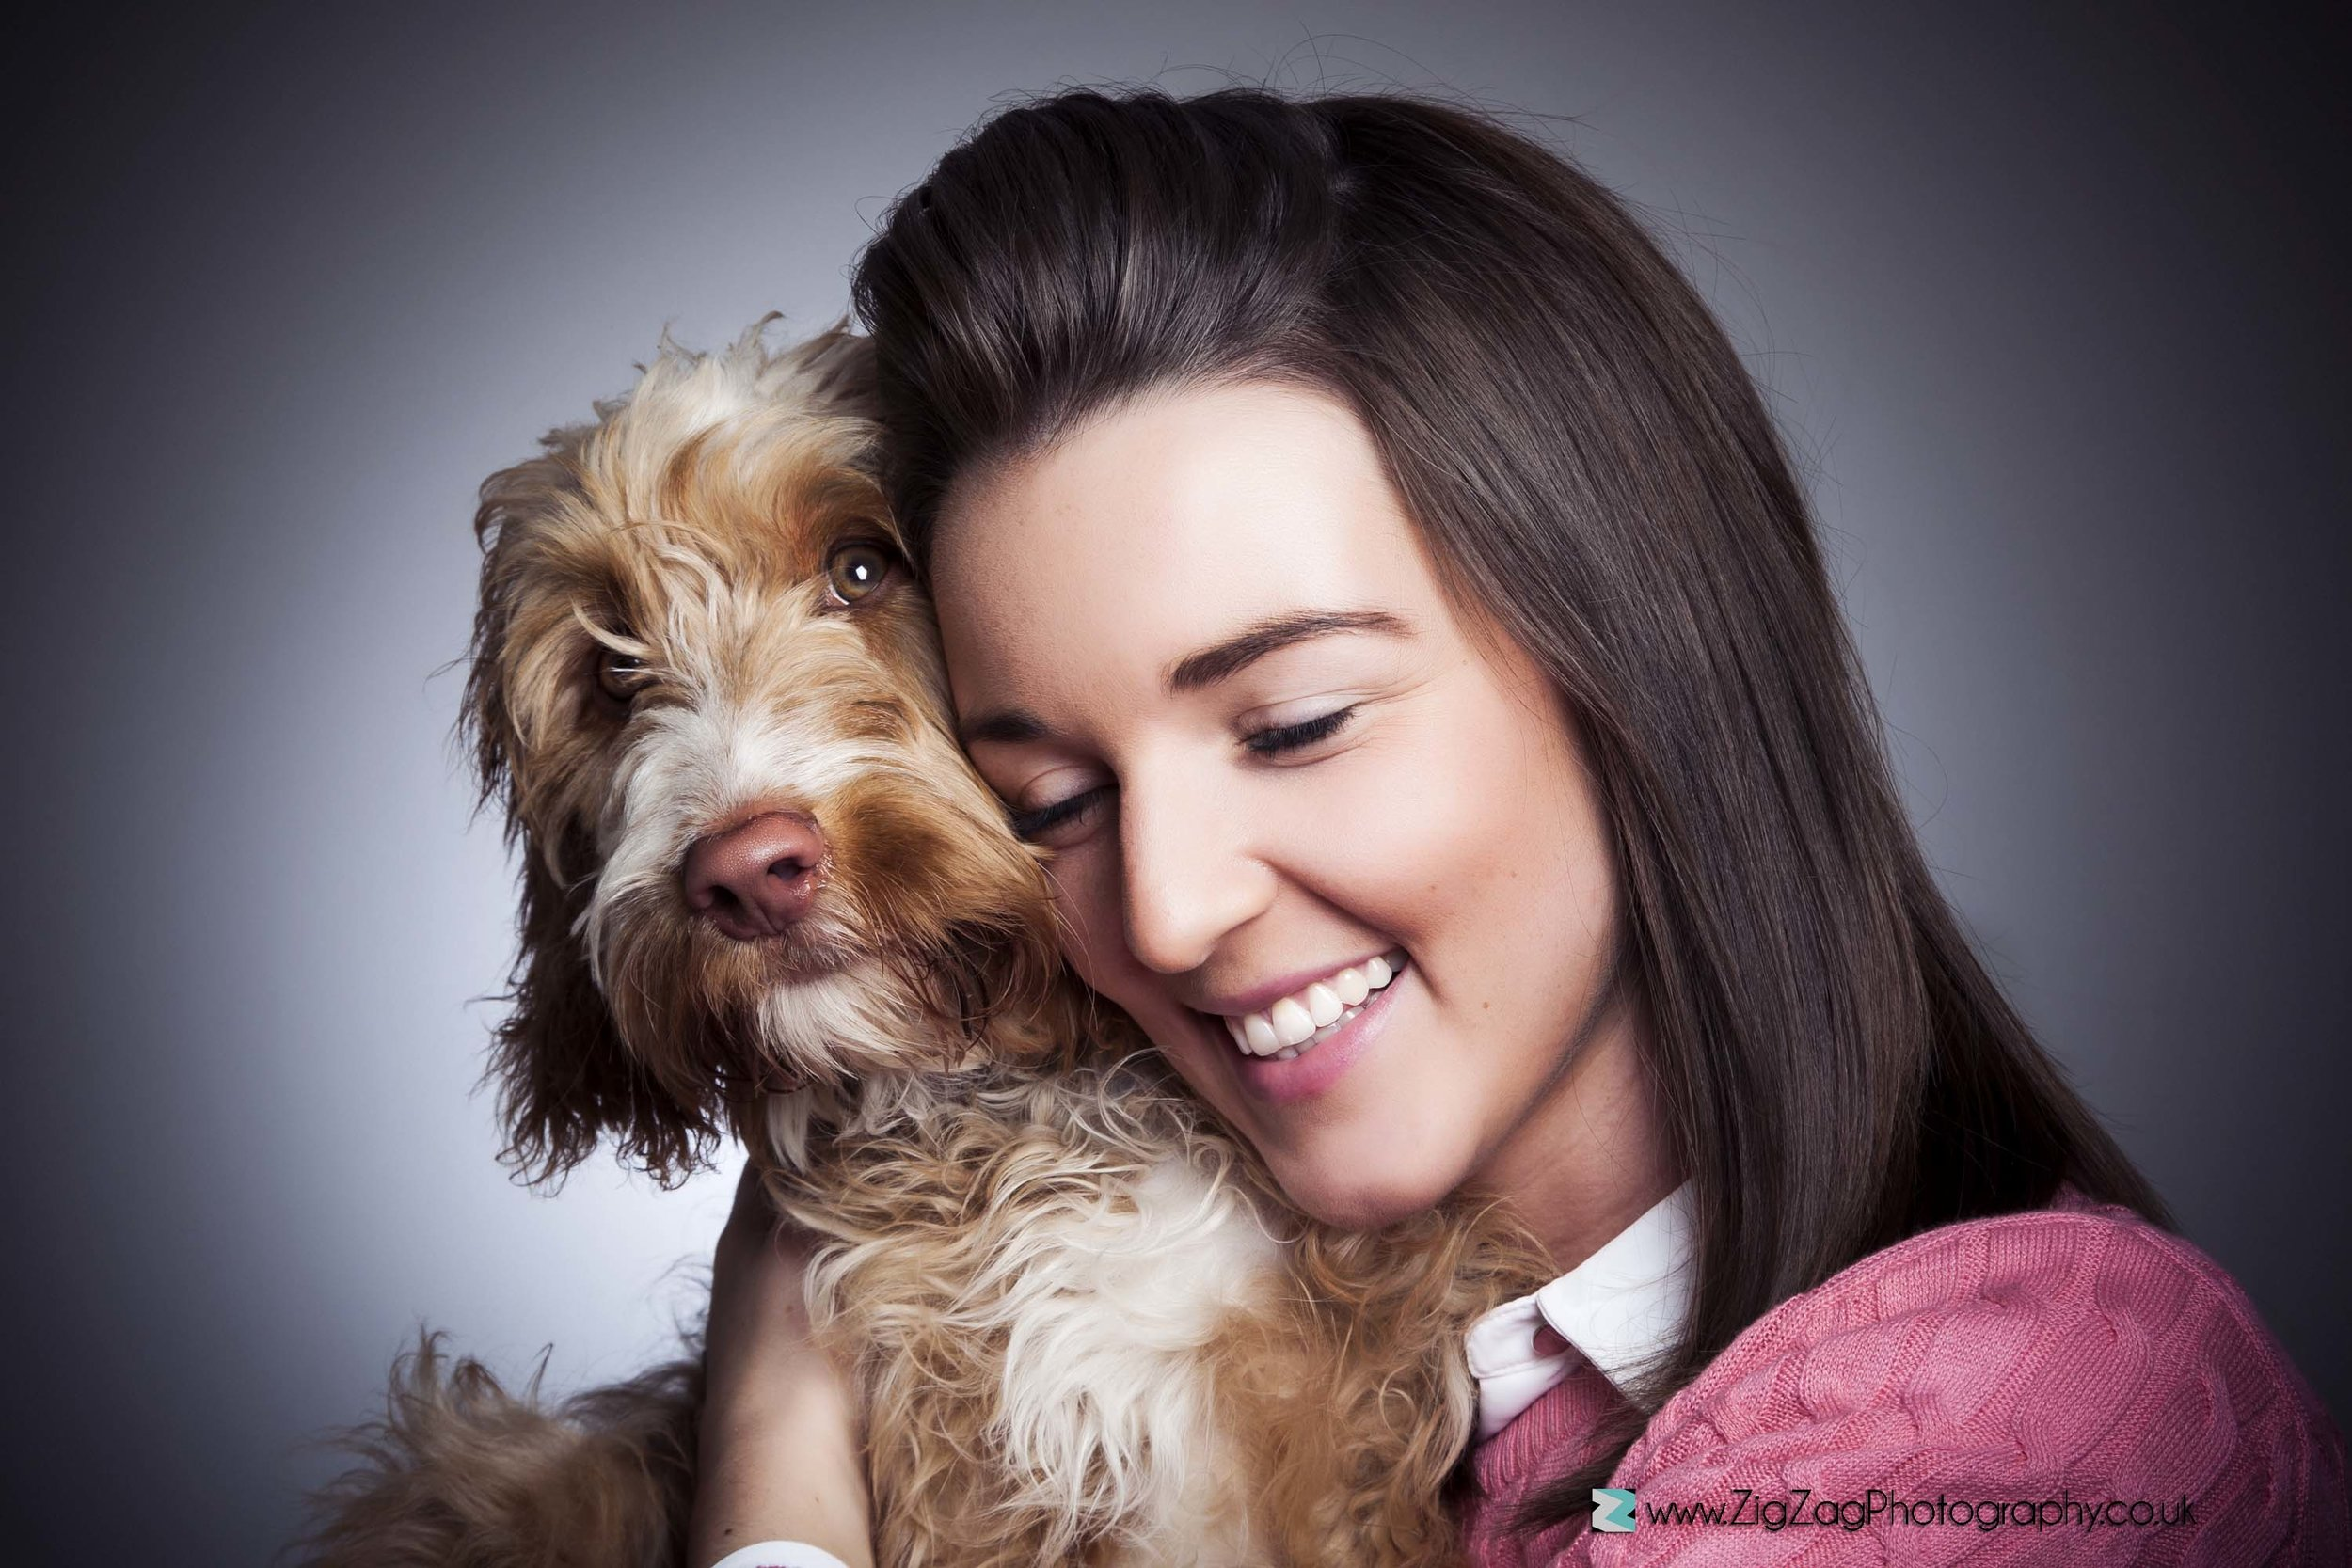 photography-session-leicester-studio-photoshoot-zigzag-puppy-love-dog-owner-lady-happy-smile-pet-fluffy-brown.jpg